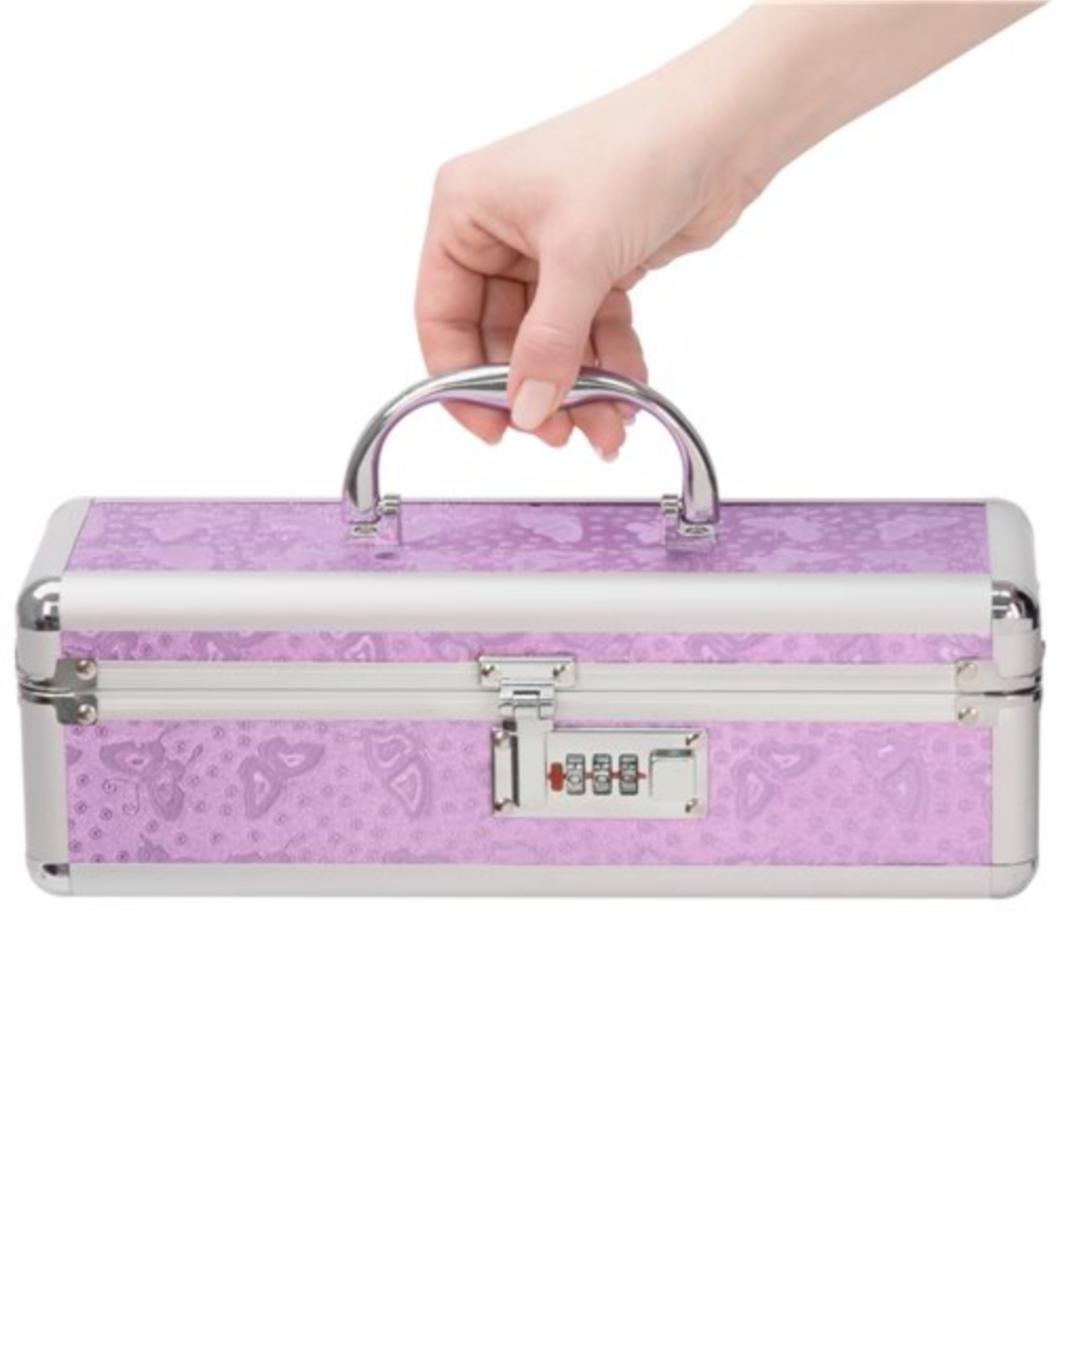 Lockable Vibrator Case Small - Purple hand holding the case